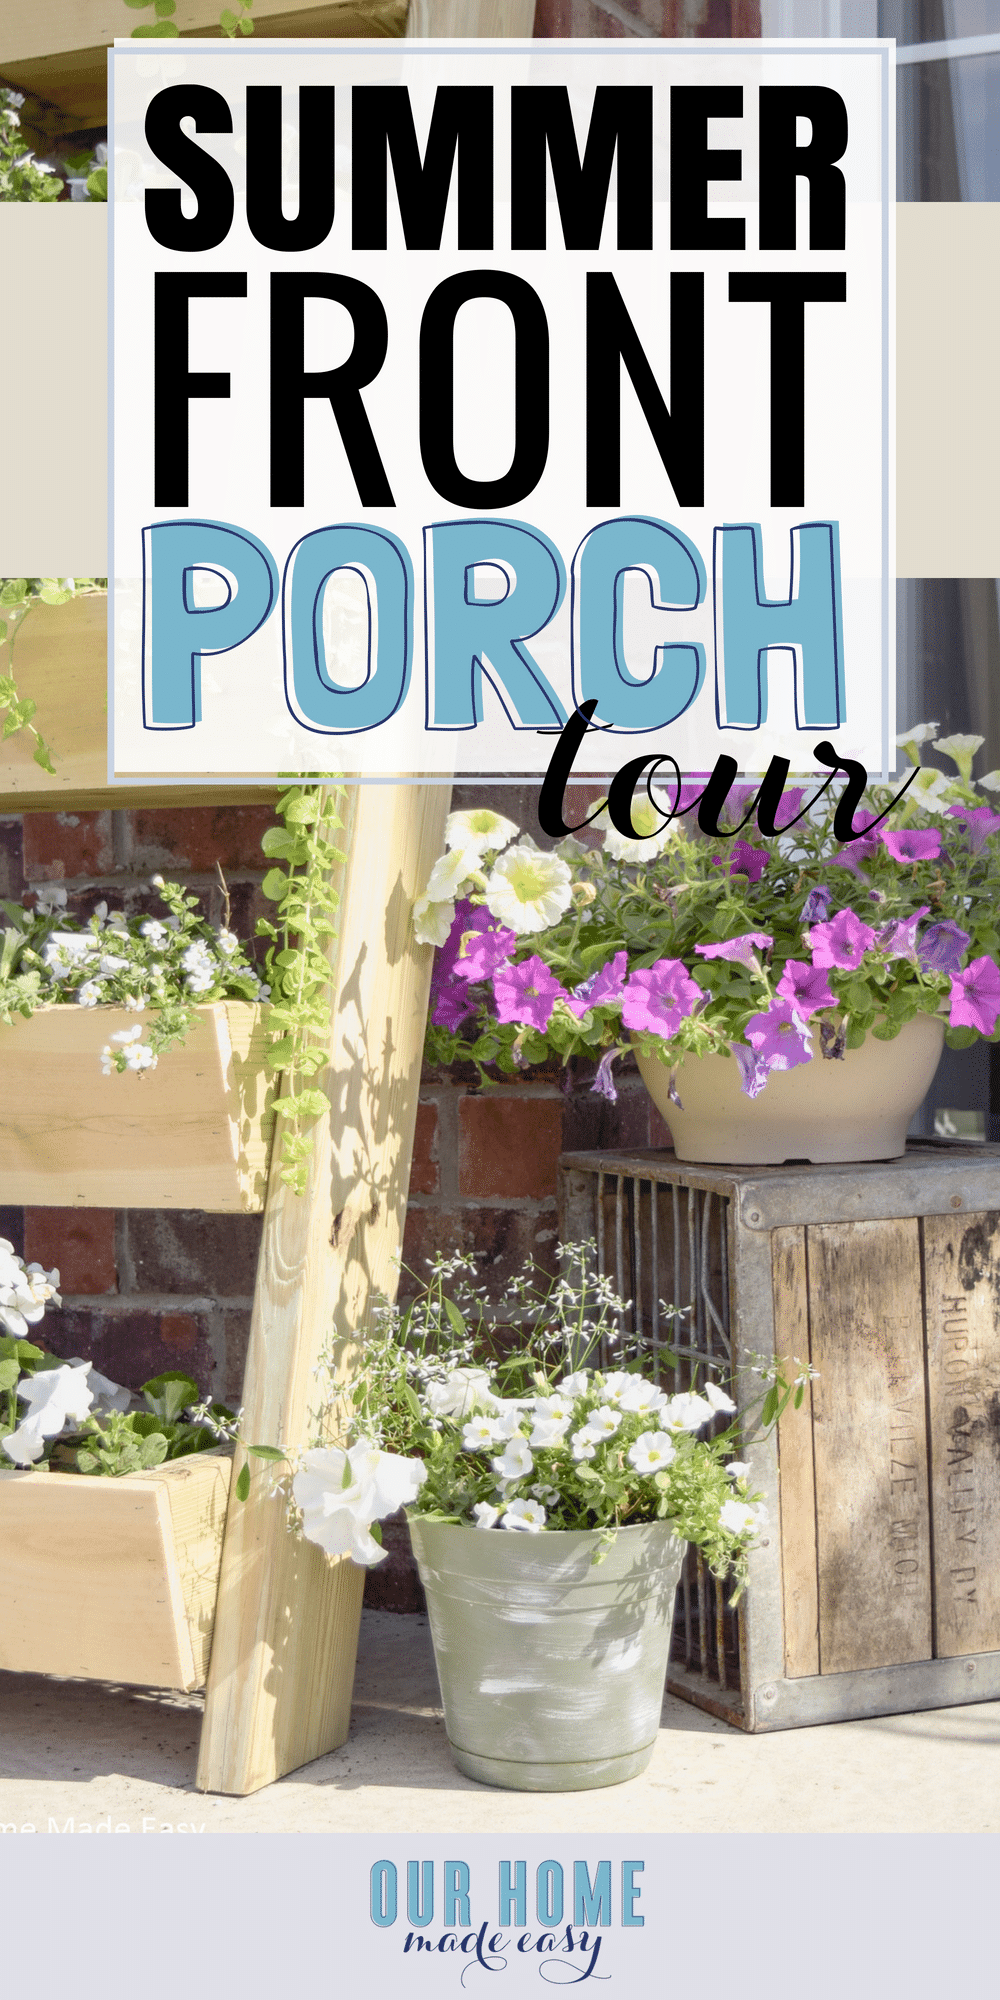 A budget friendly summer front porch inspired by easy DIY projects and simple flowers! #summer #frontporch #entry #homedecor #flowers